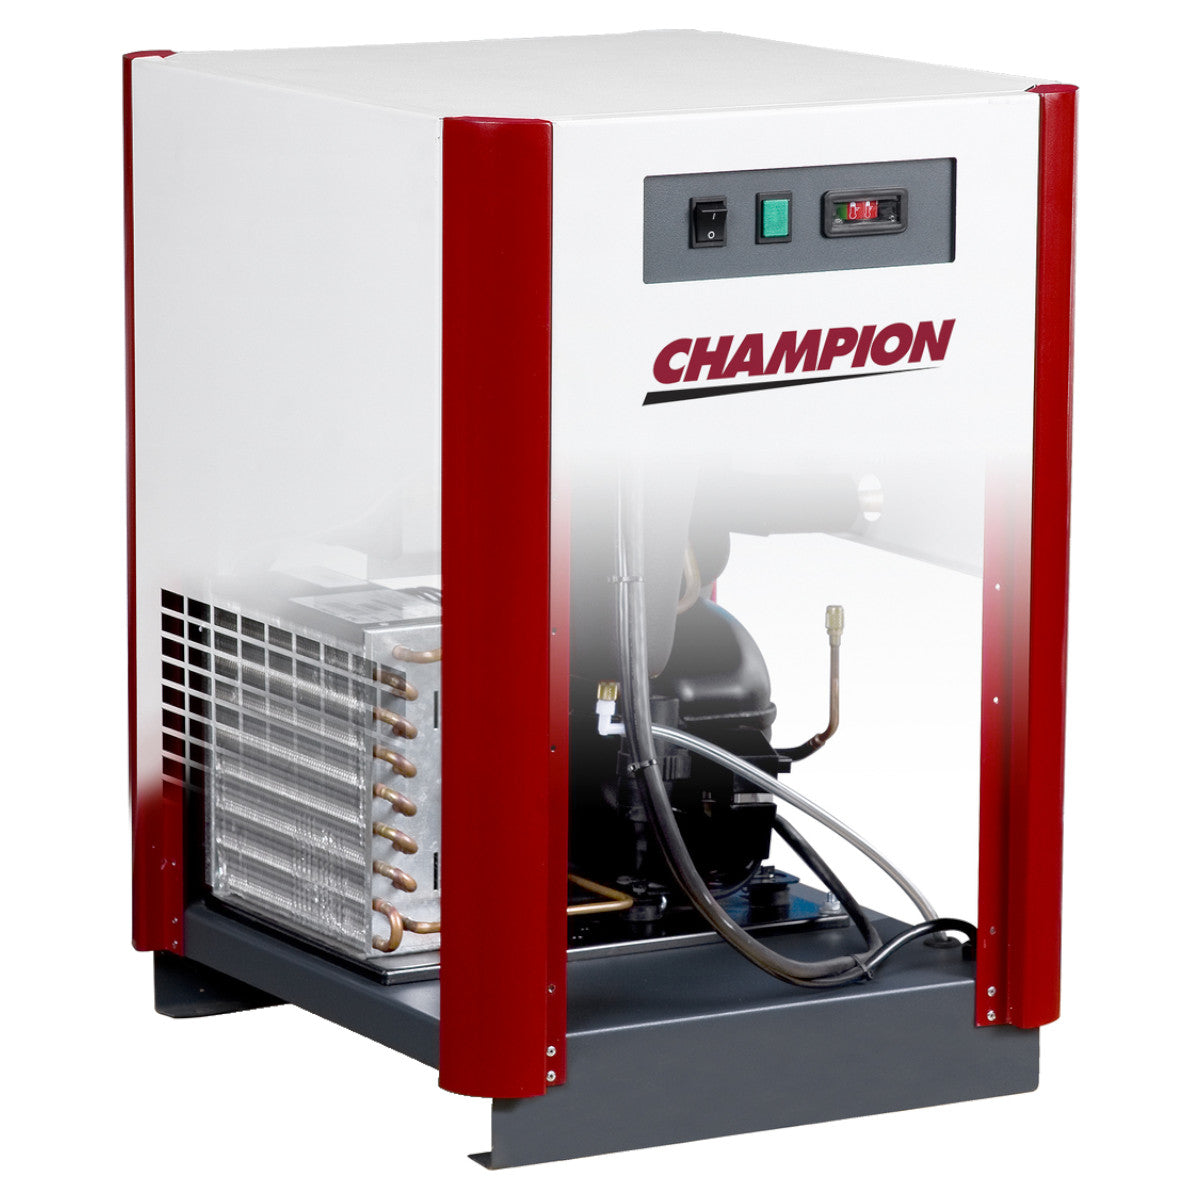 Champion CRN50 Refrigerated Air Dryer 50 CFM Capacity